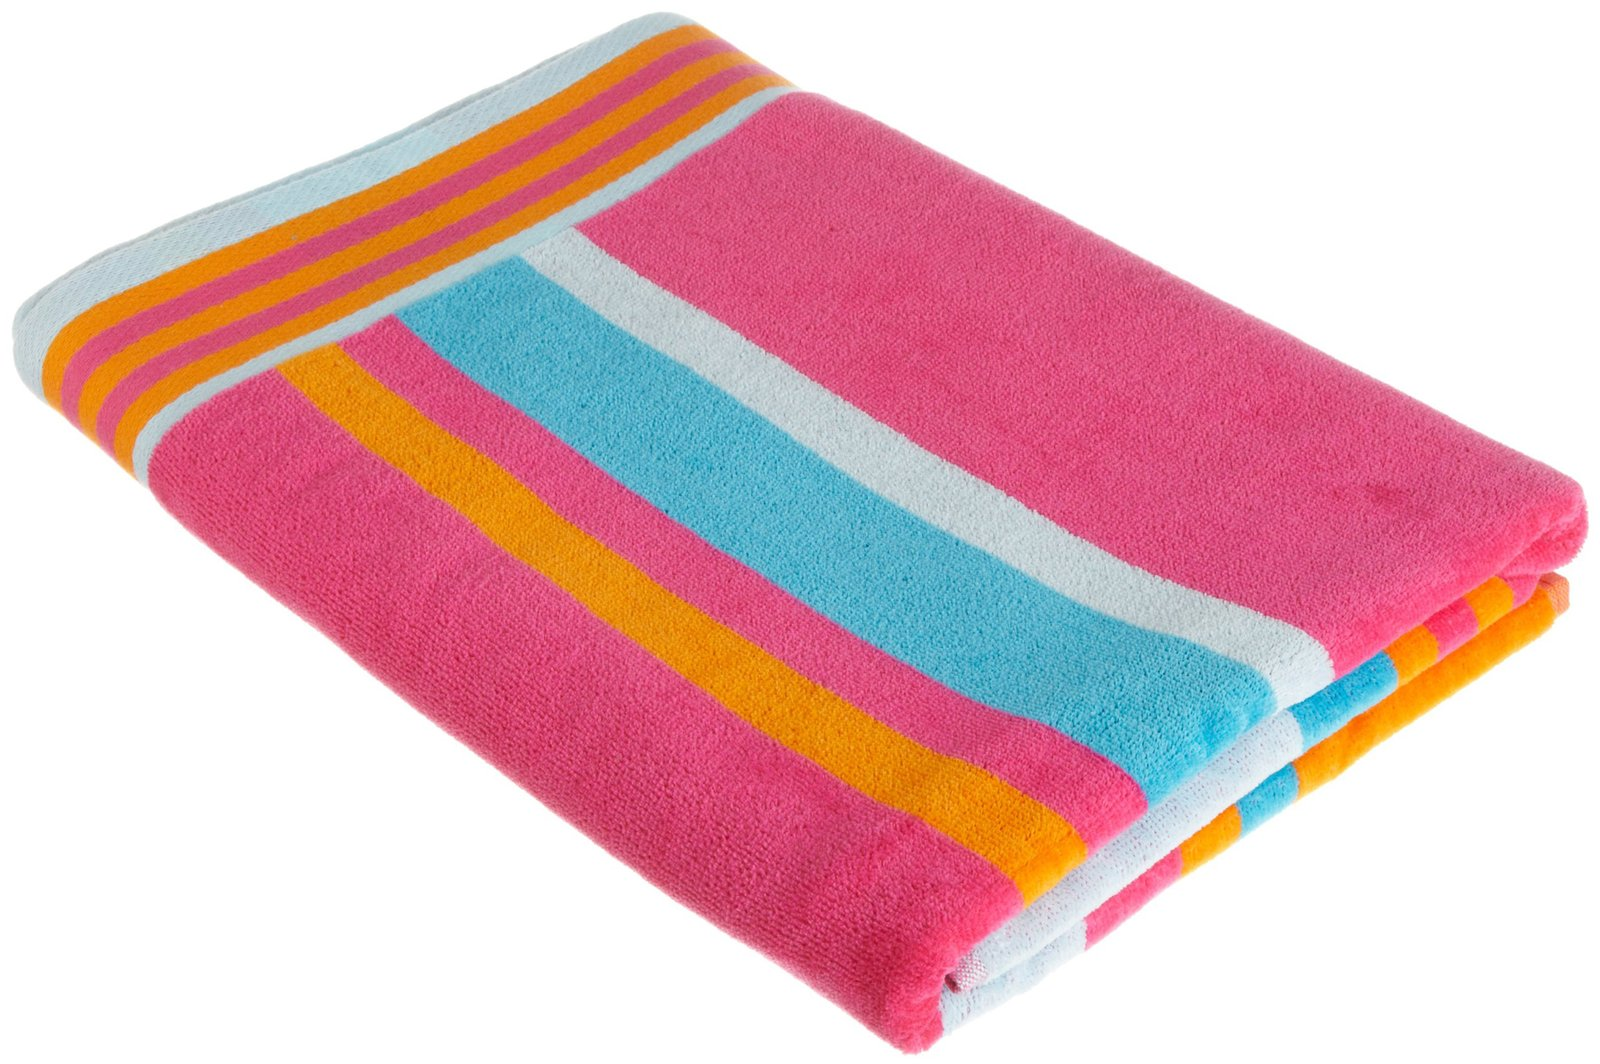 beach towel clipart clipart suggest beach towel clipart beach towel png clipart